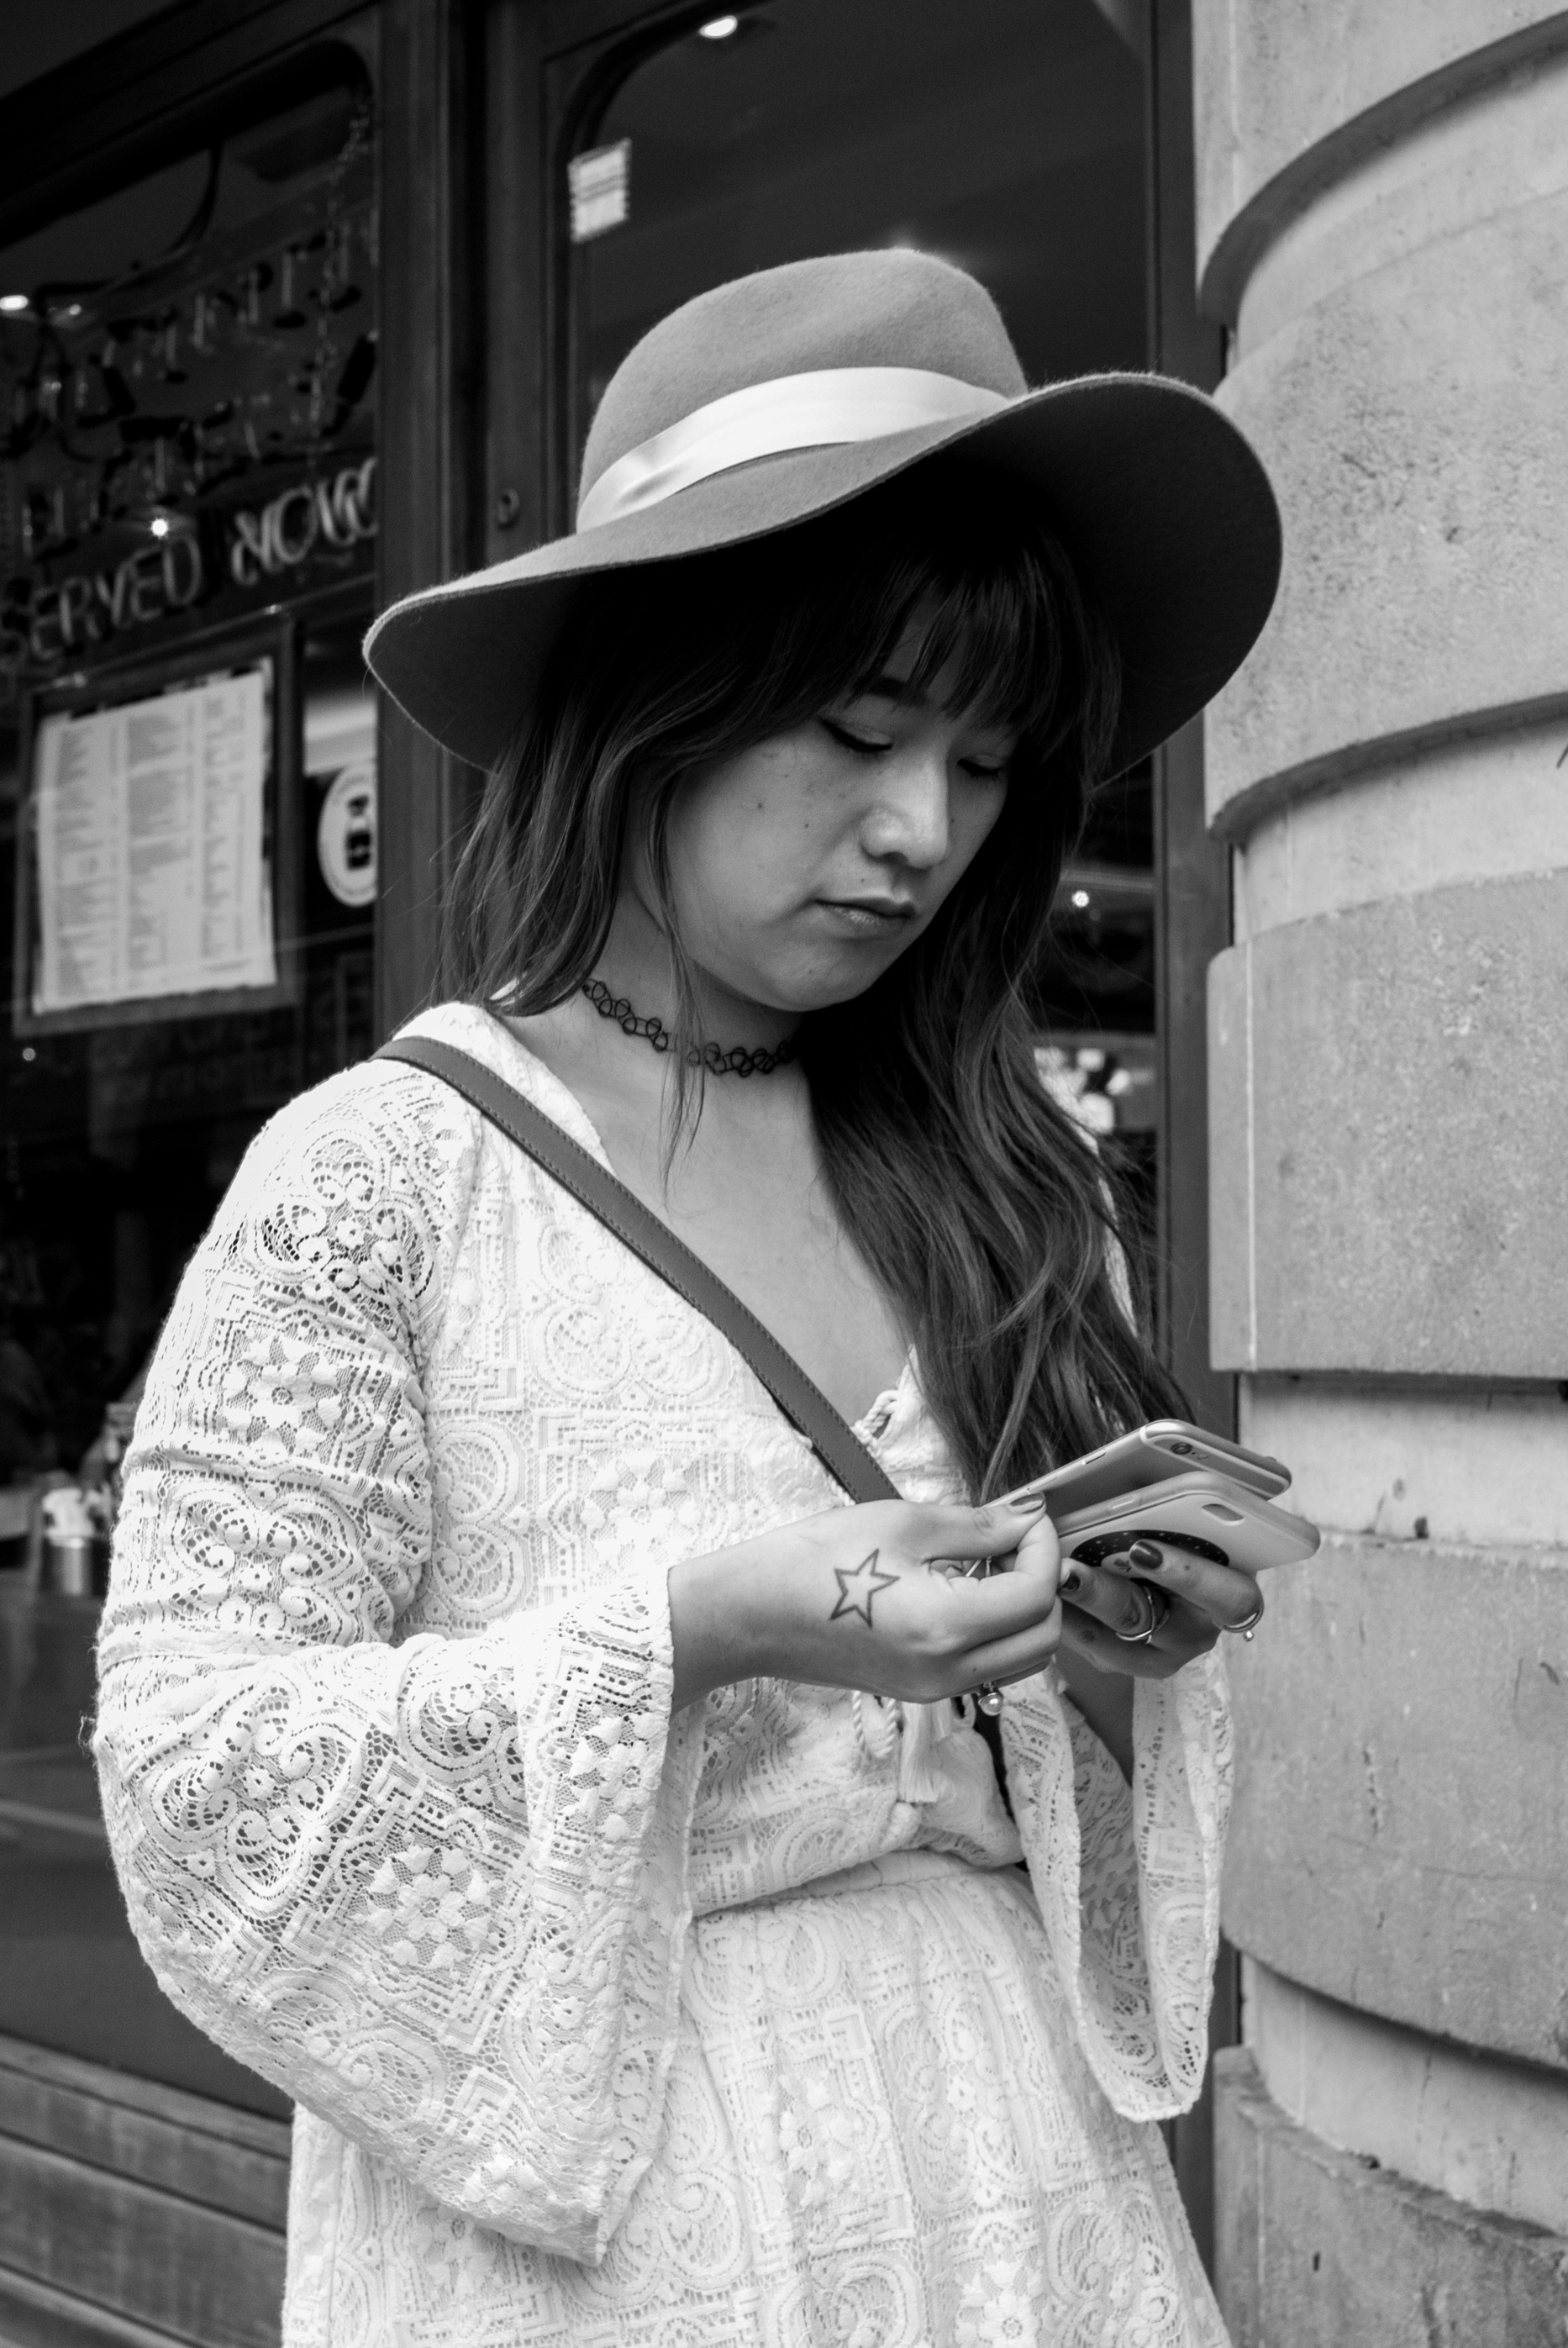 Two Phones? -Leica MM with Leica 35mm Summarit ASPH